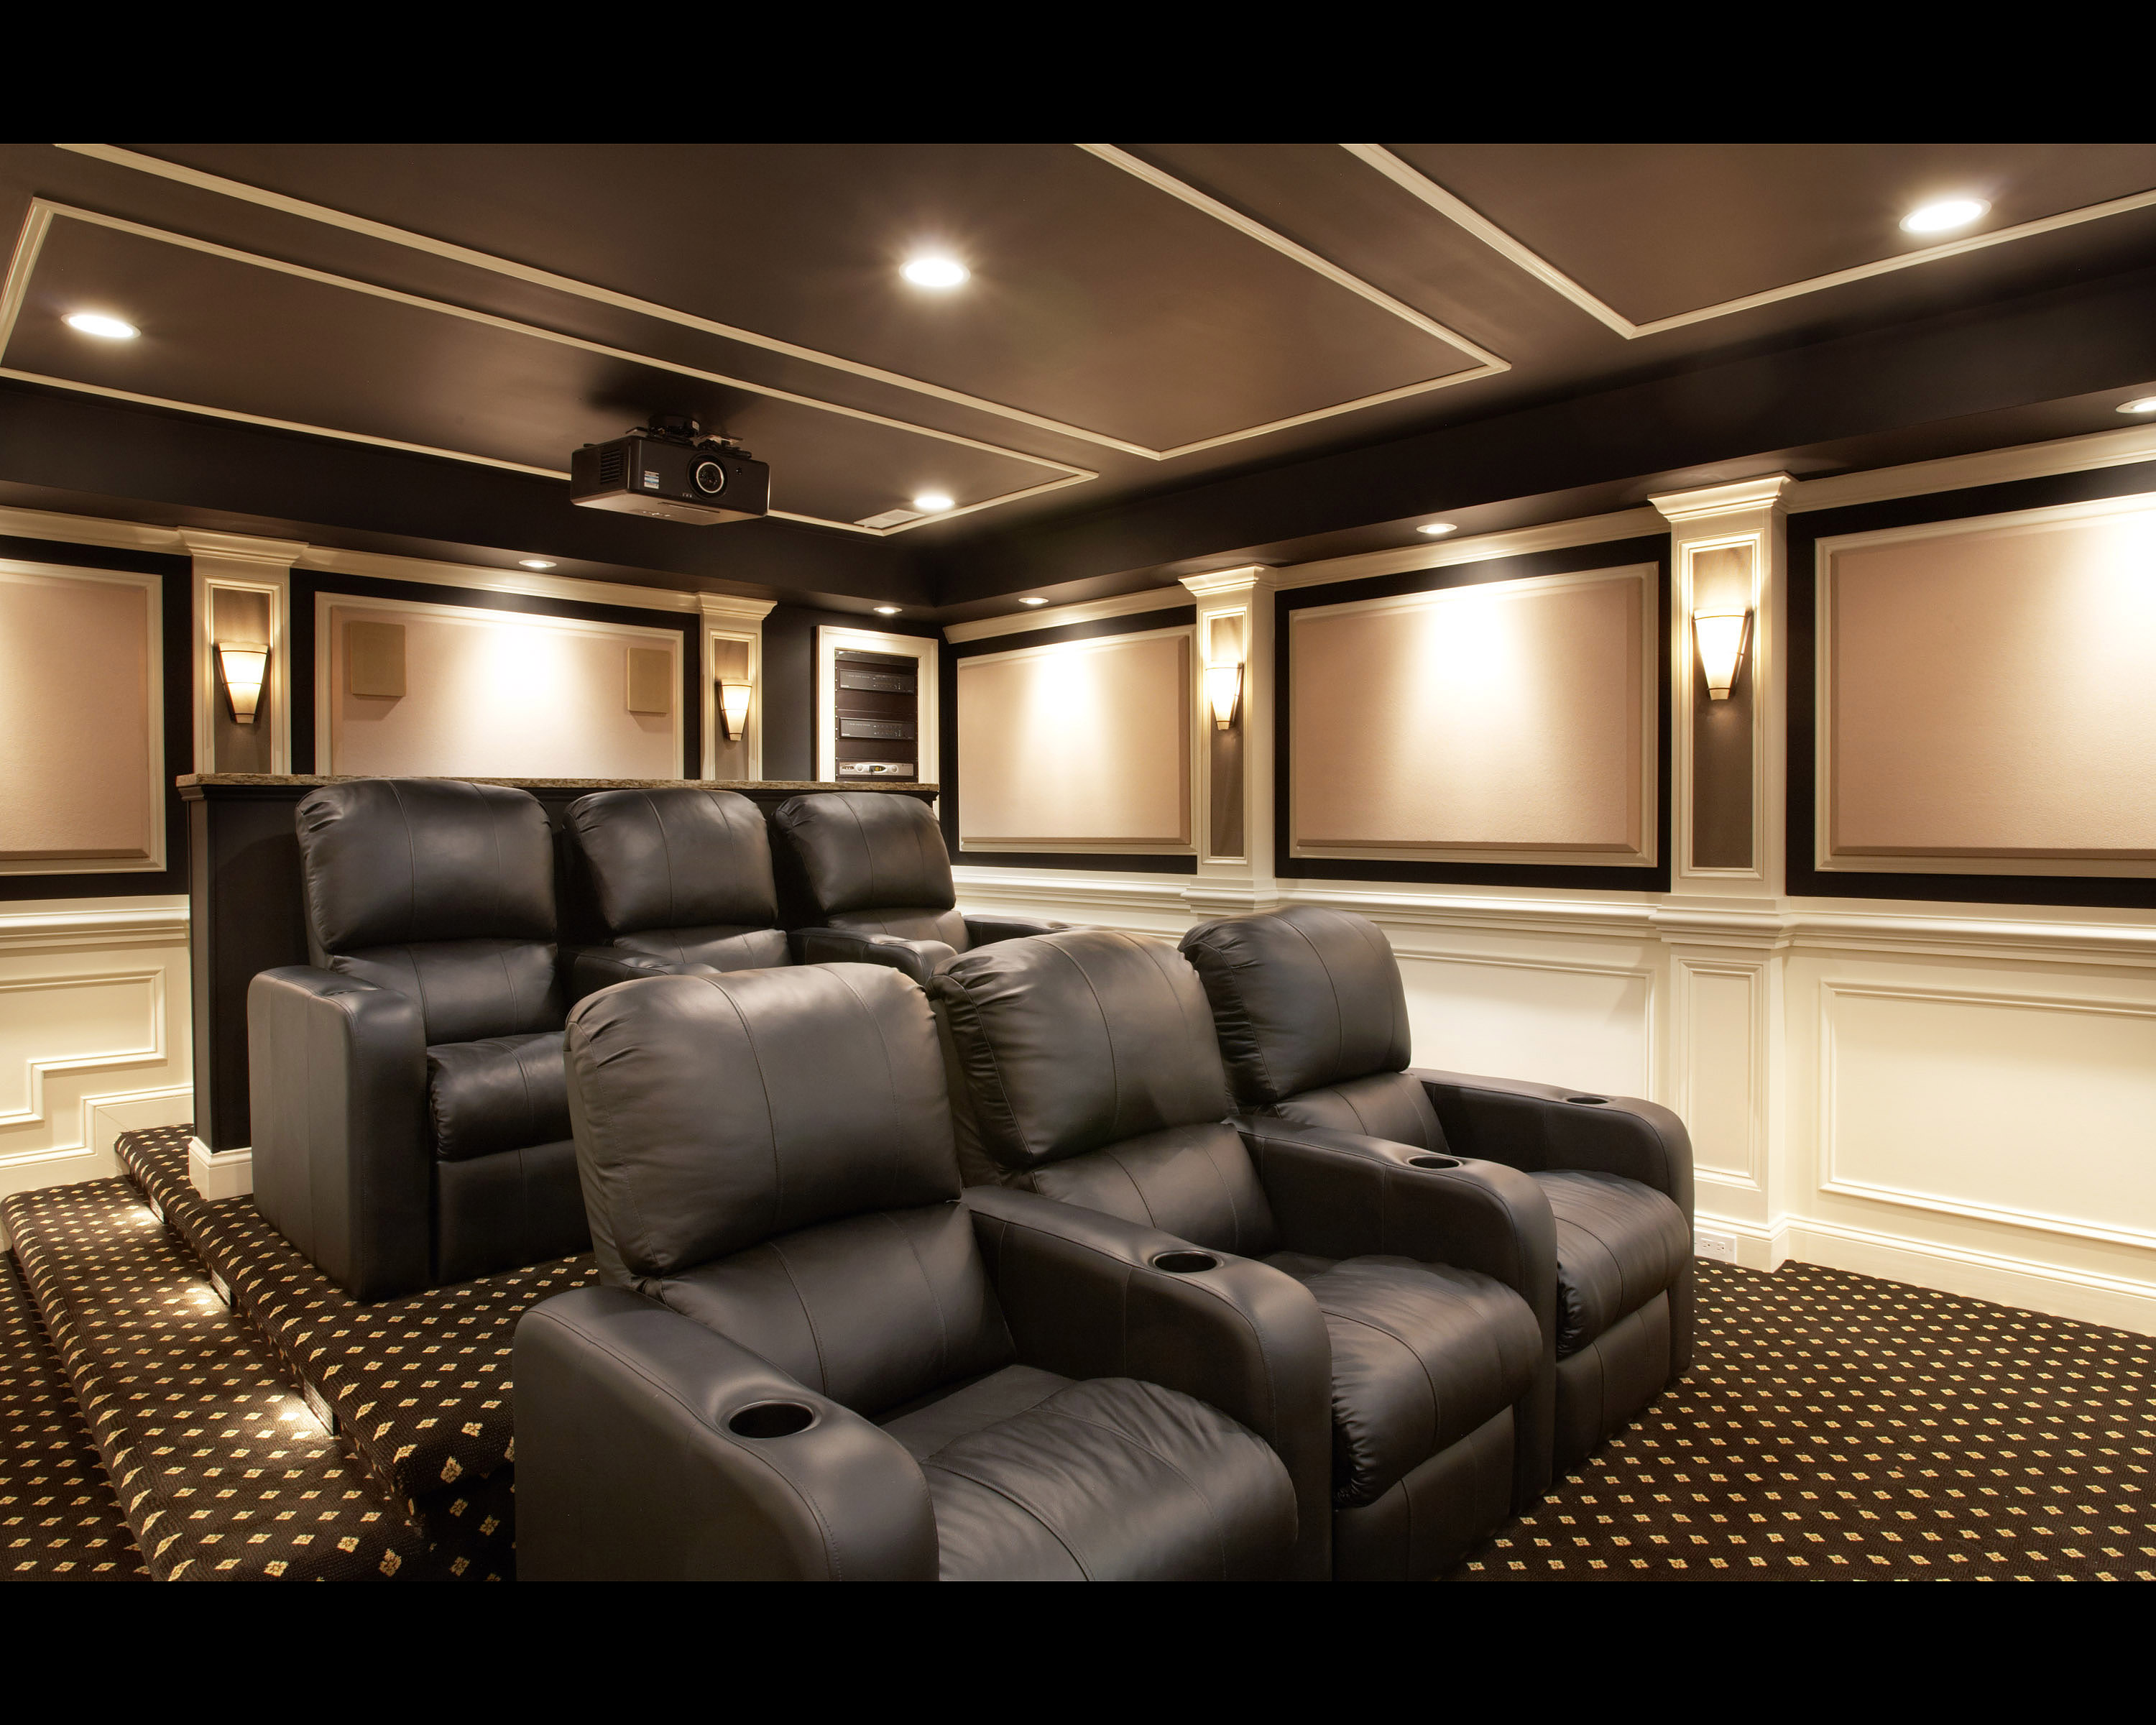 Encore custom audio video wins electronic lifestyle award for best home theater design - Home entertainment design ...